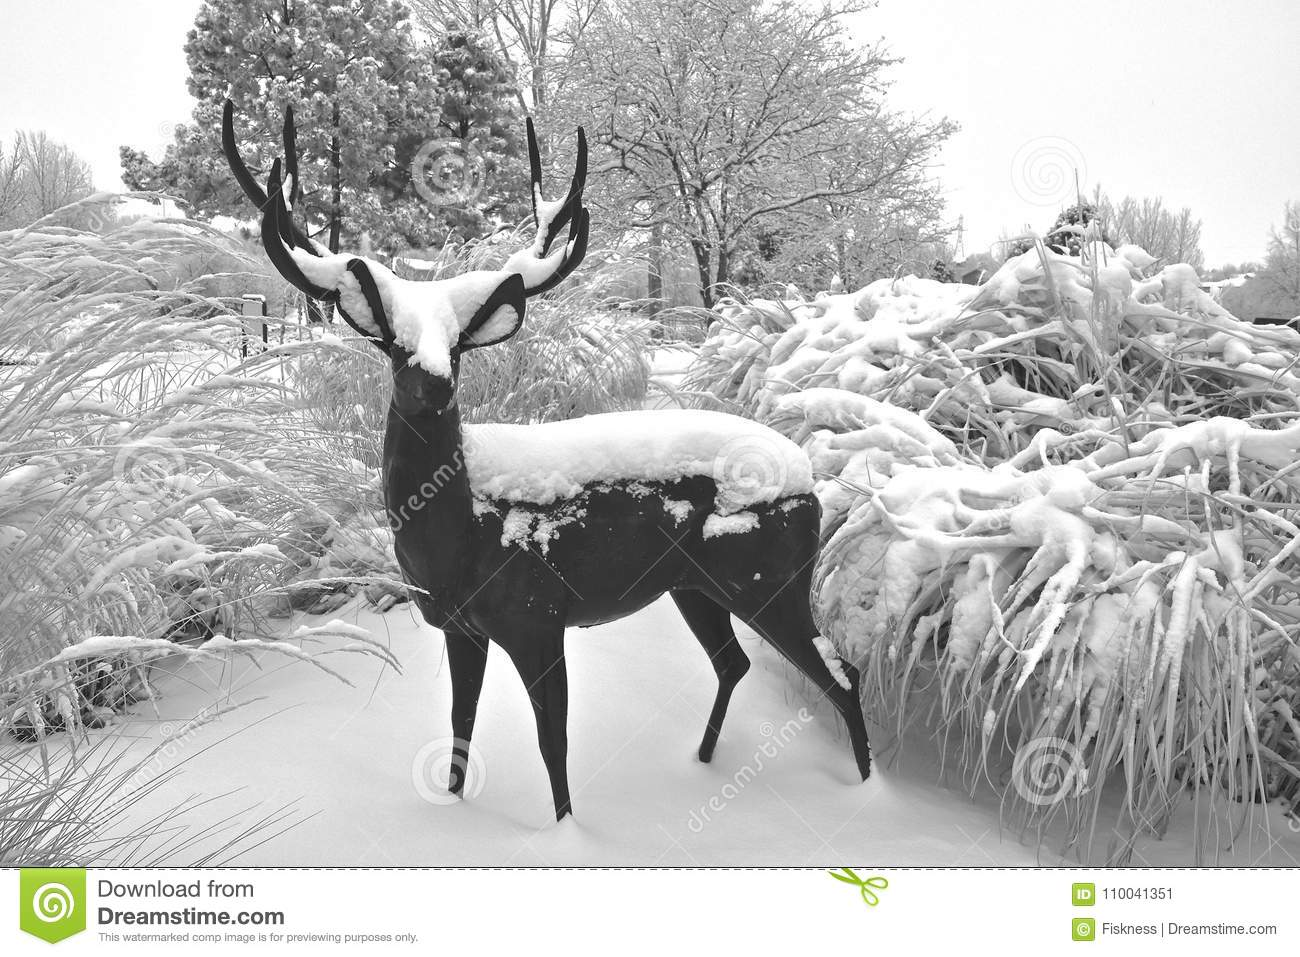 A sculpture of a deer surrounded by long grass is covered by a fresh snow black and white